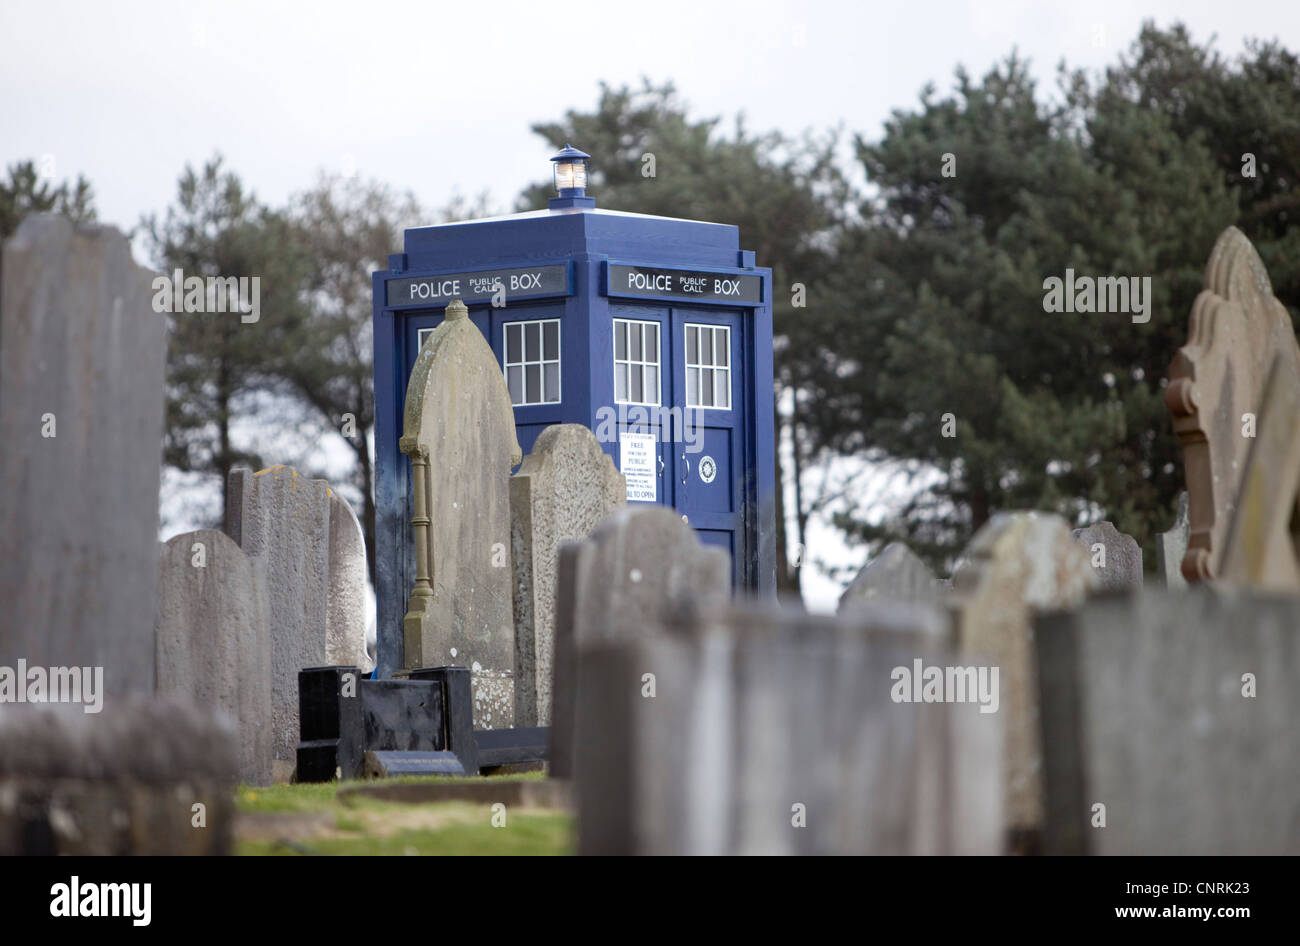 The Tardis, on set for the filming of Doctor Who at the Box Cemetery, Llanelli Carmarthenshire. - Stock Image